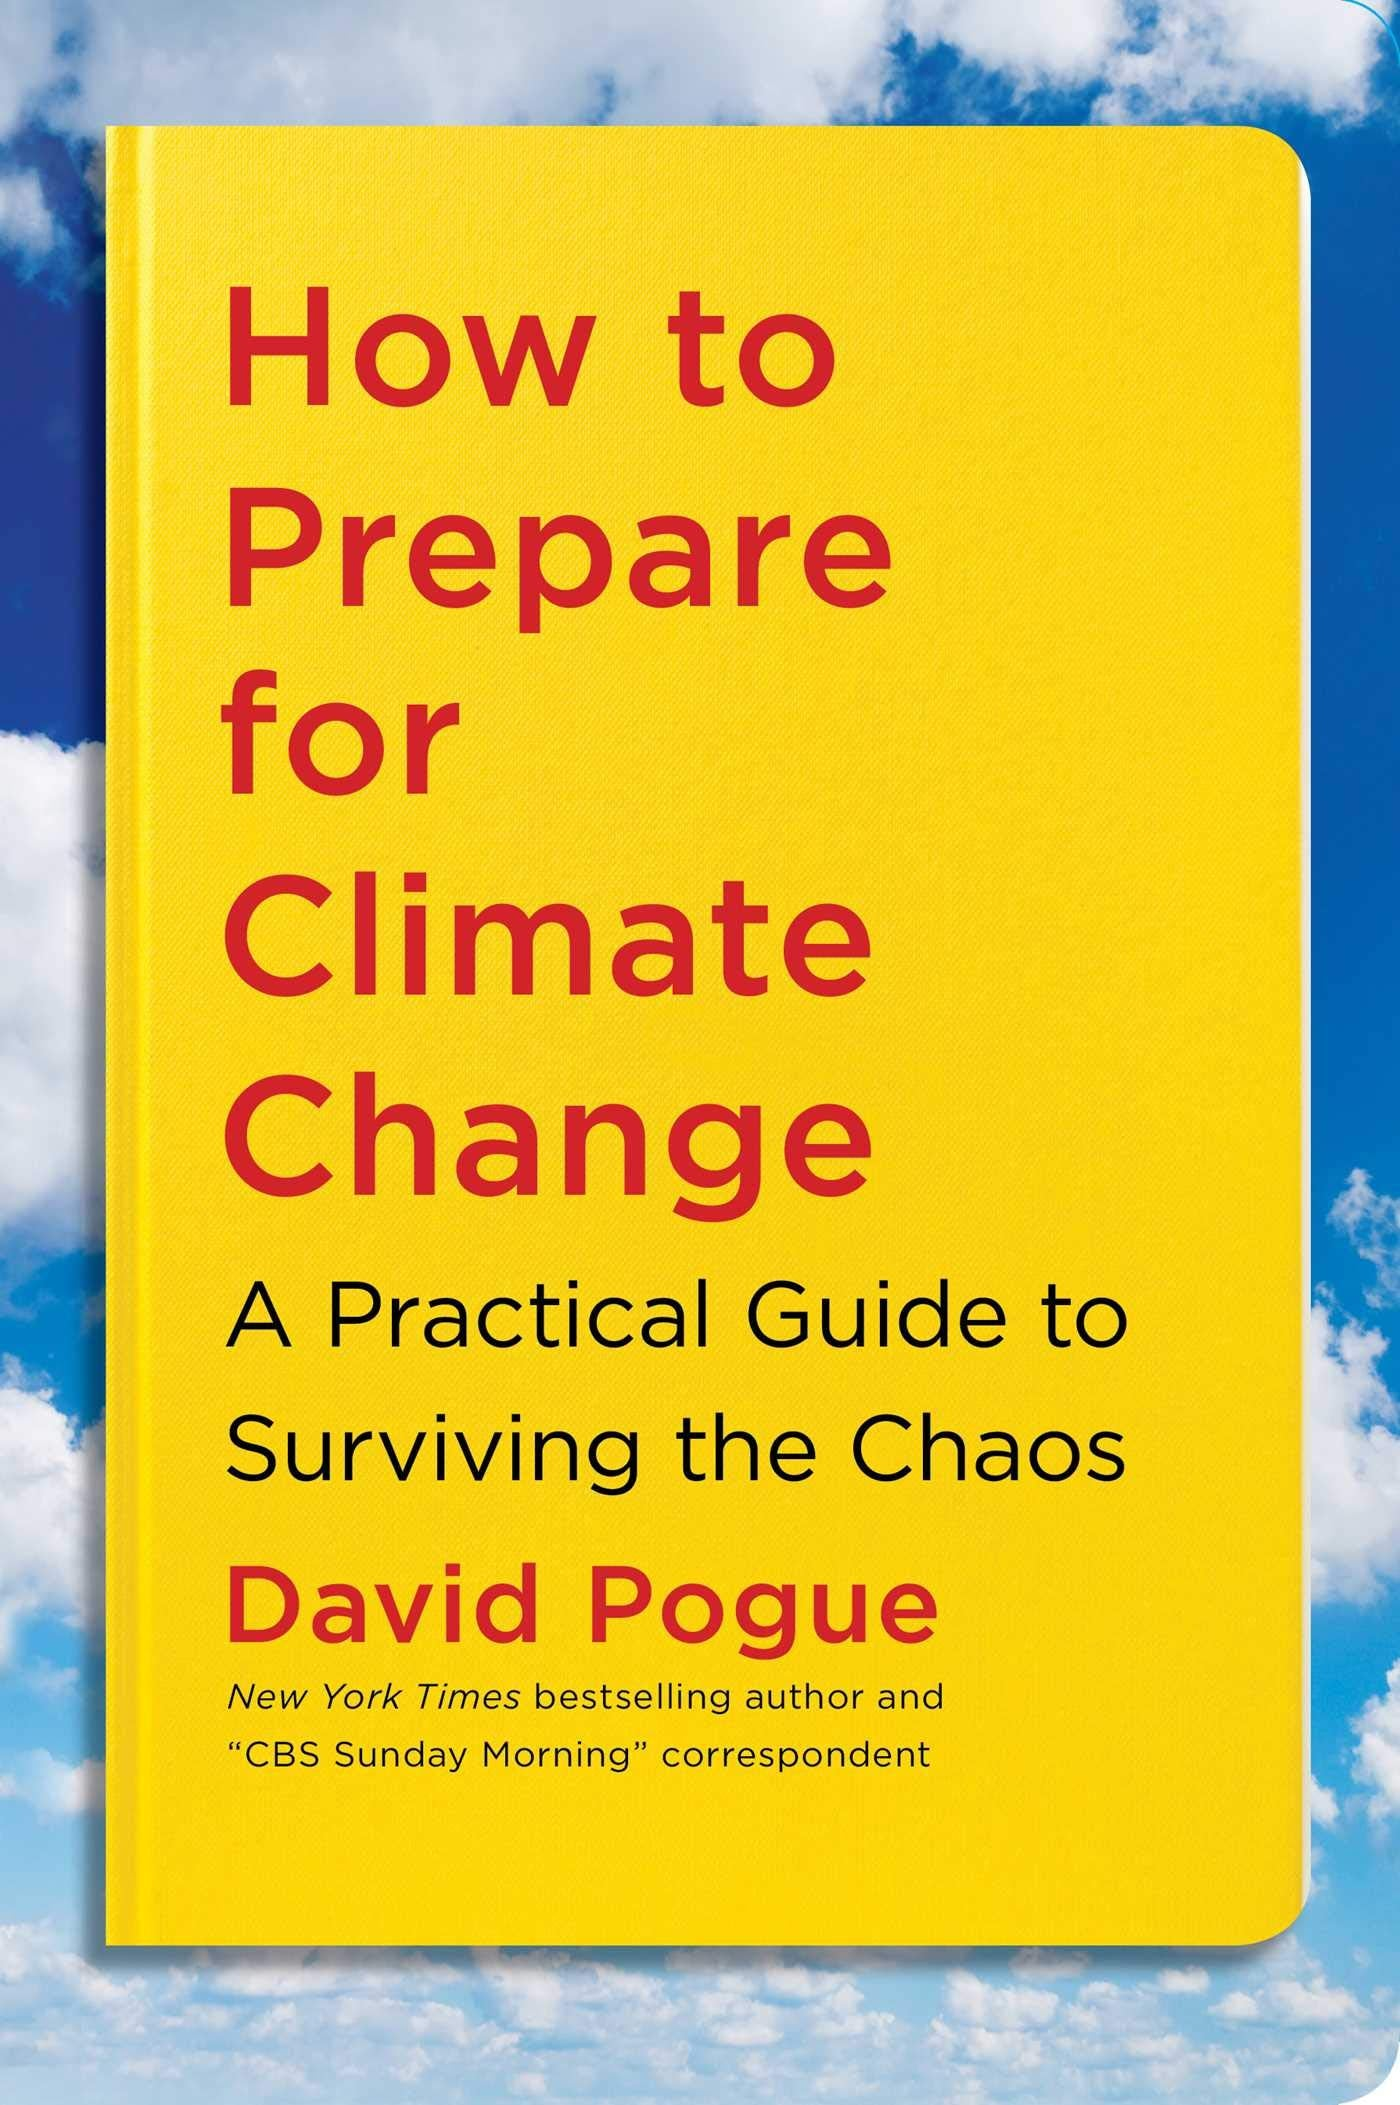 How to prepare for Climate Change by David Pogue